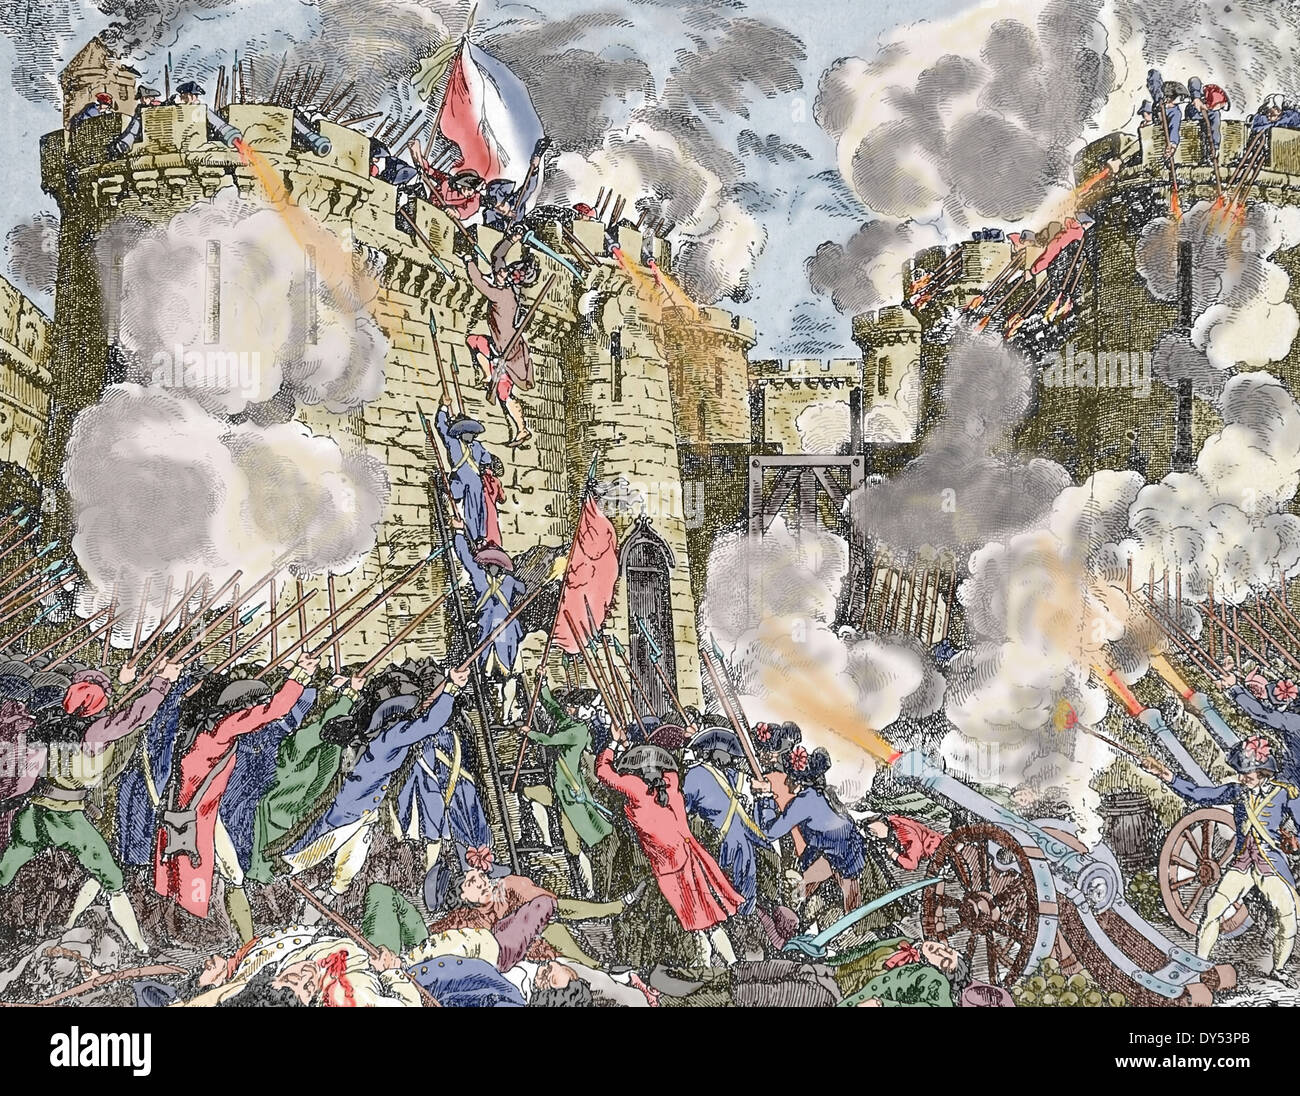 Storming Of The Bastille Pictures To Pin On Pinterest